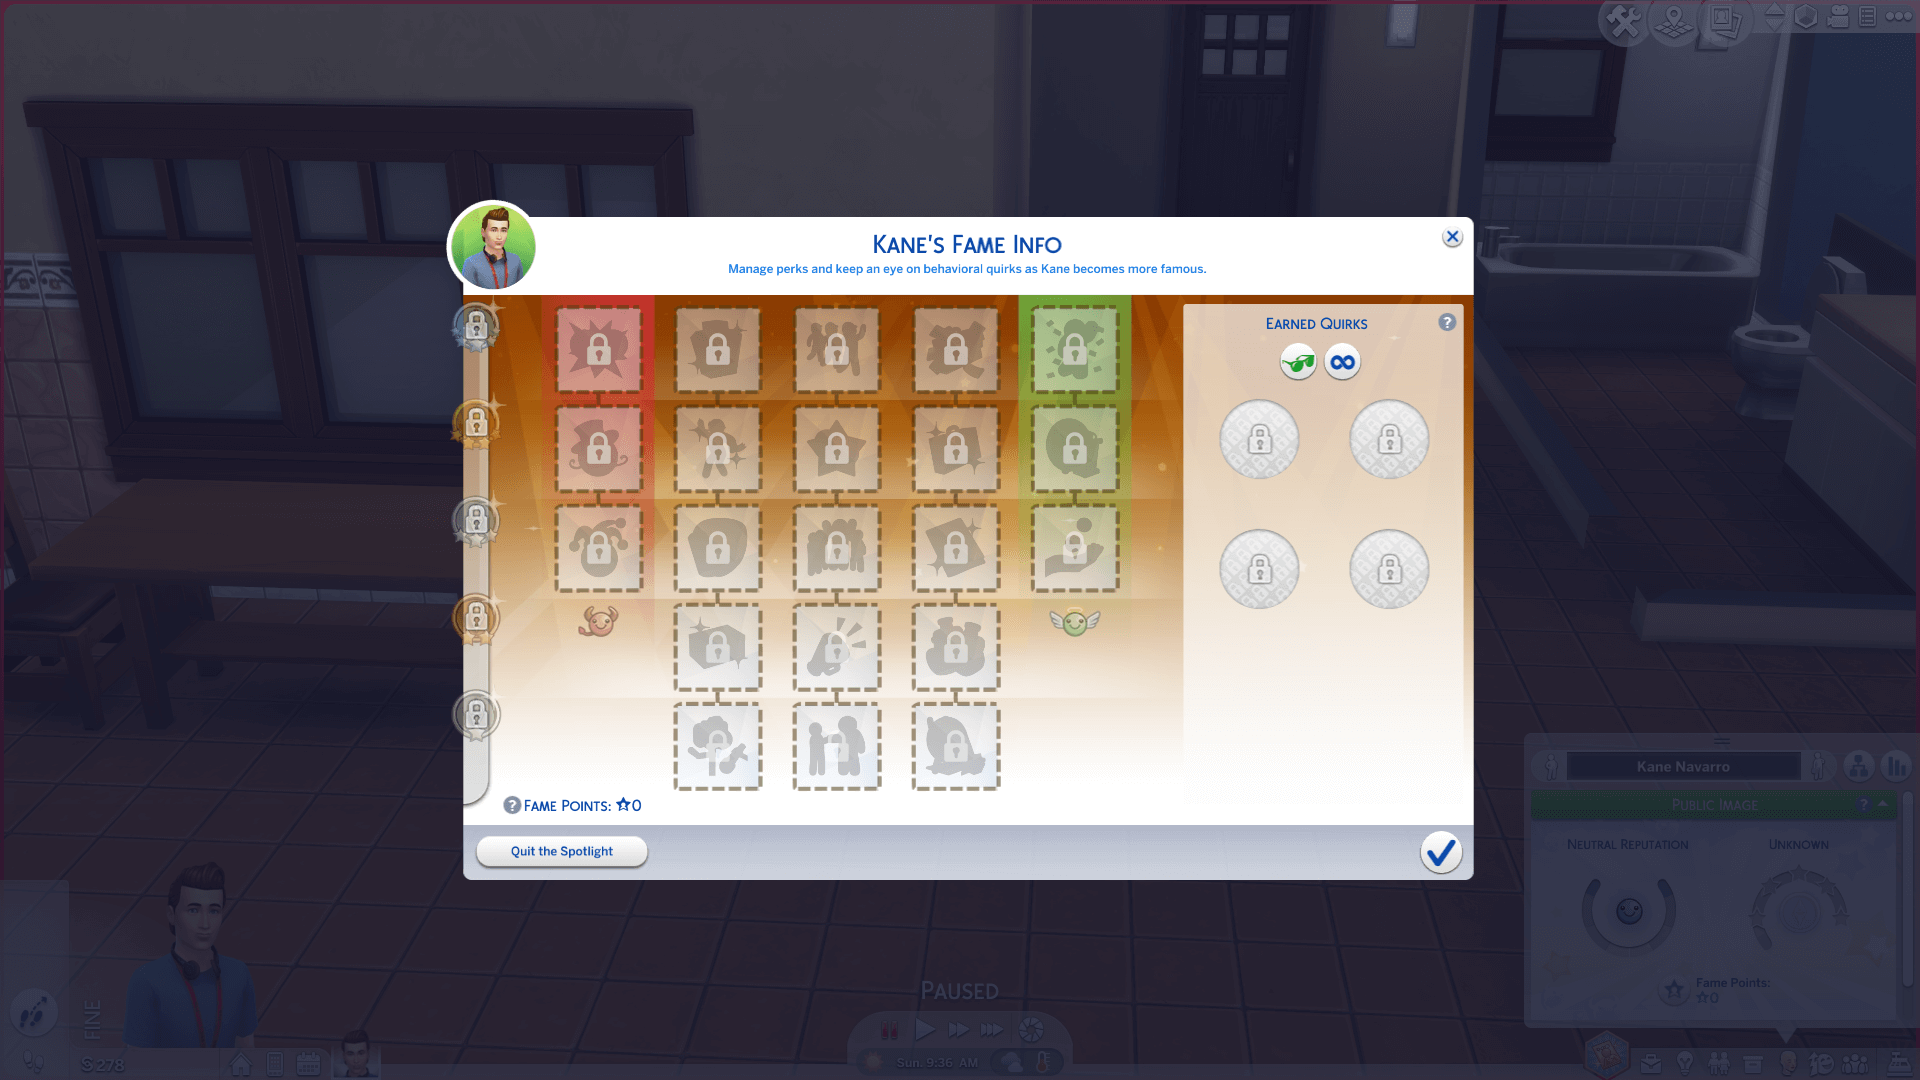 The Sims 4 Get Famous: Celebrity System, Reputation, Fame